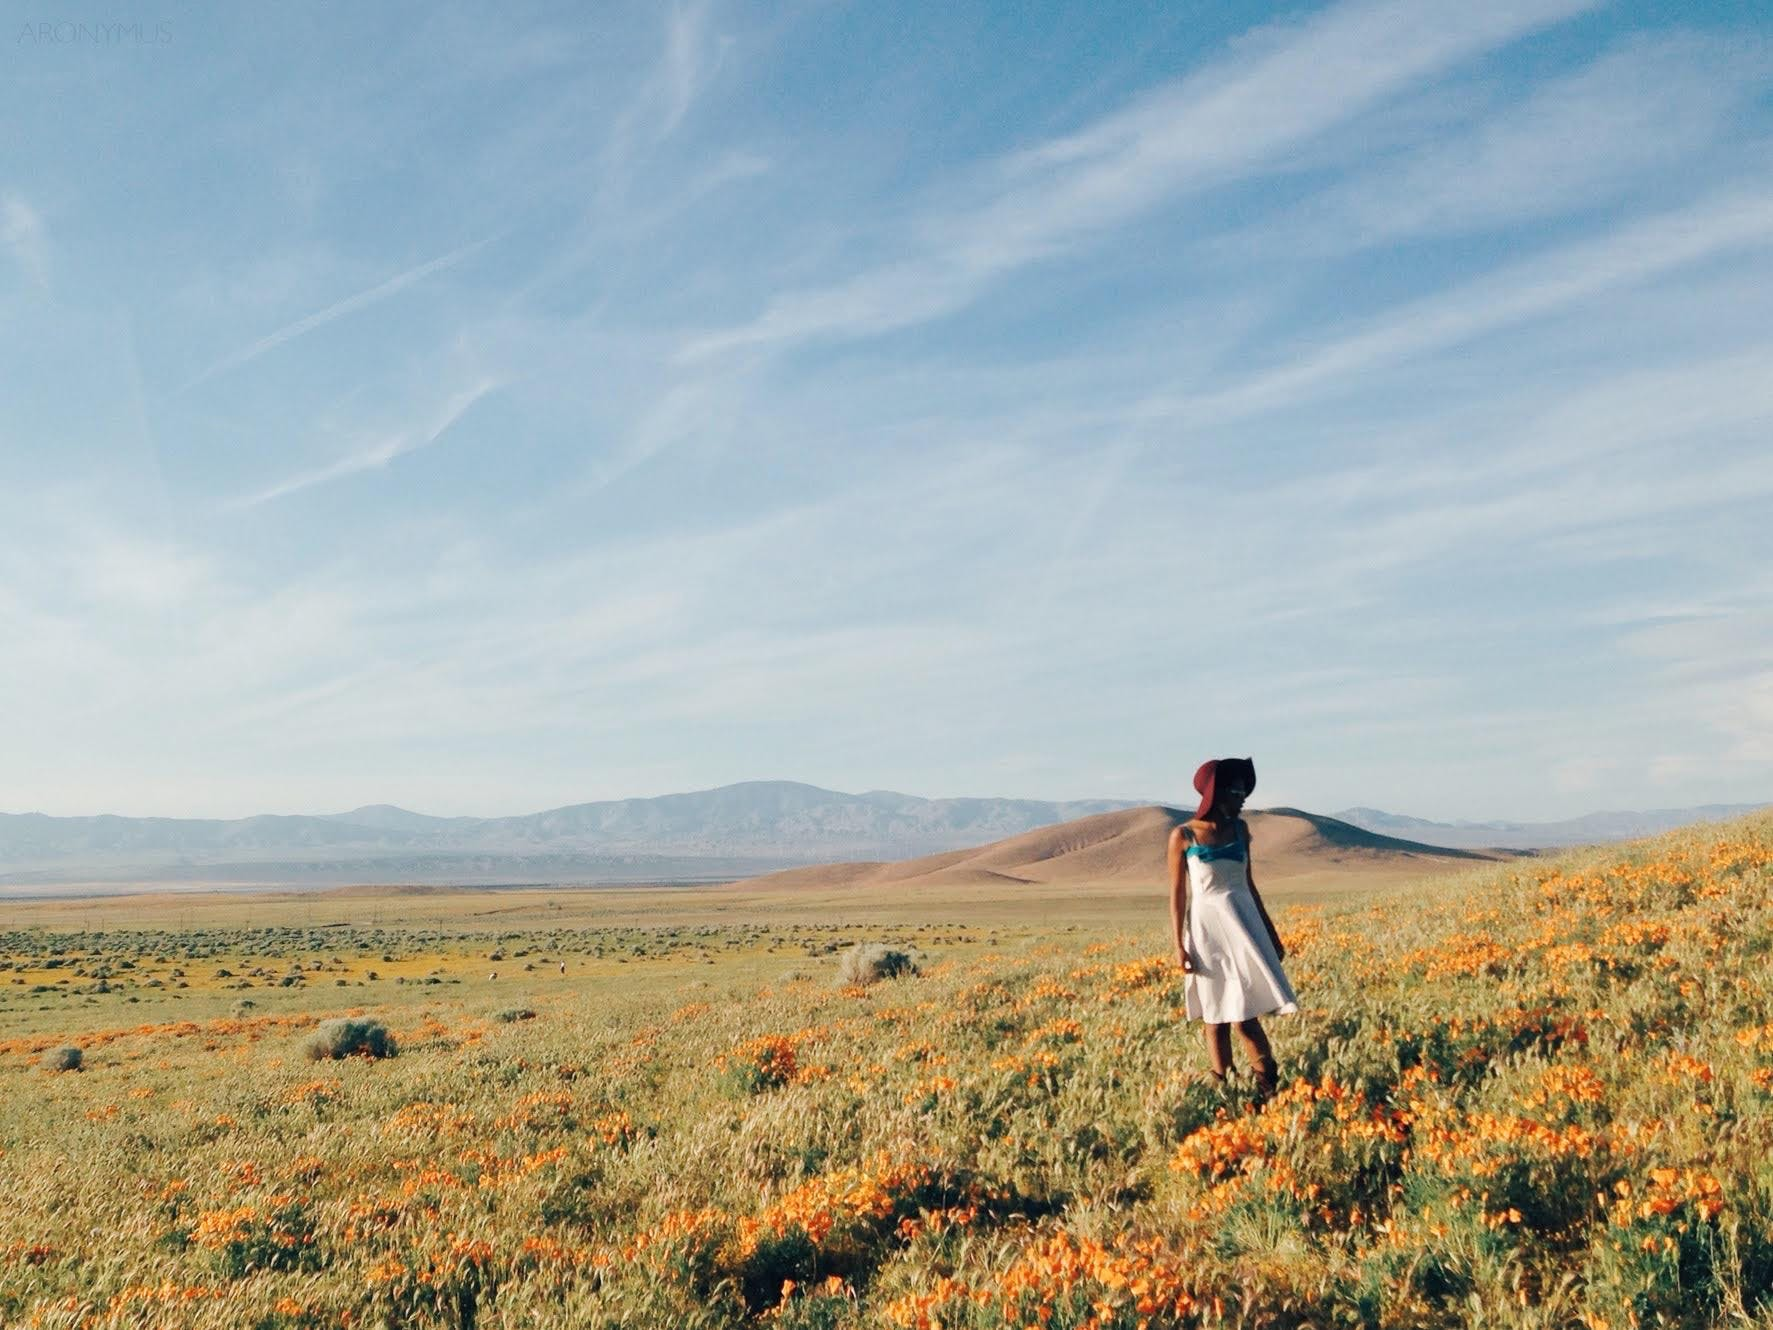 Woman in White Sundress Standing on Flower Field during Daytime